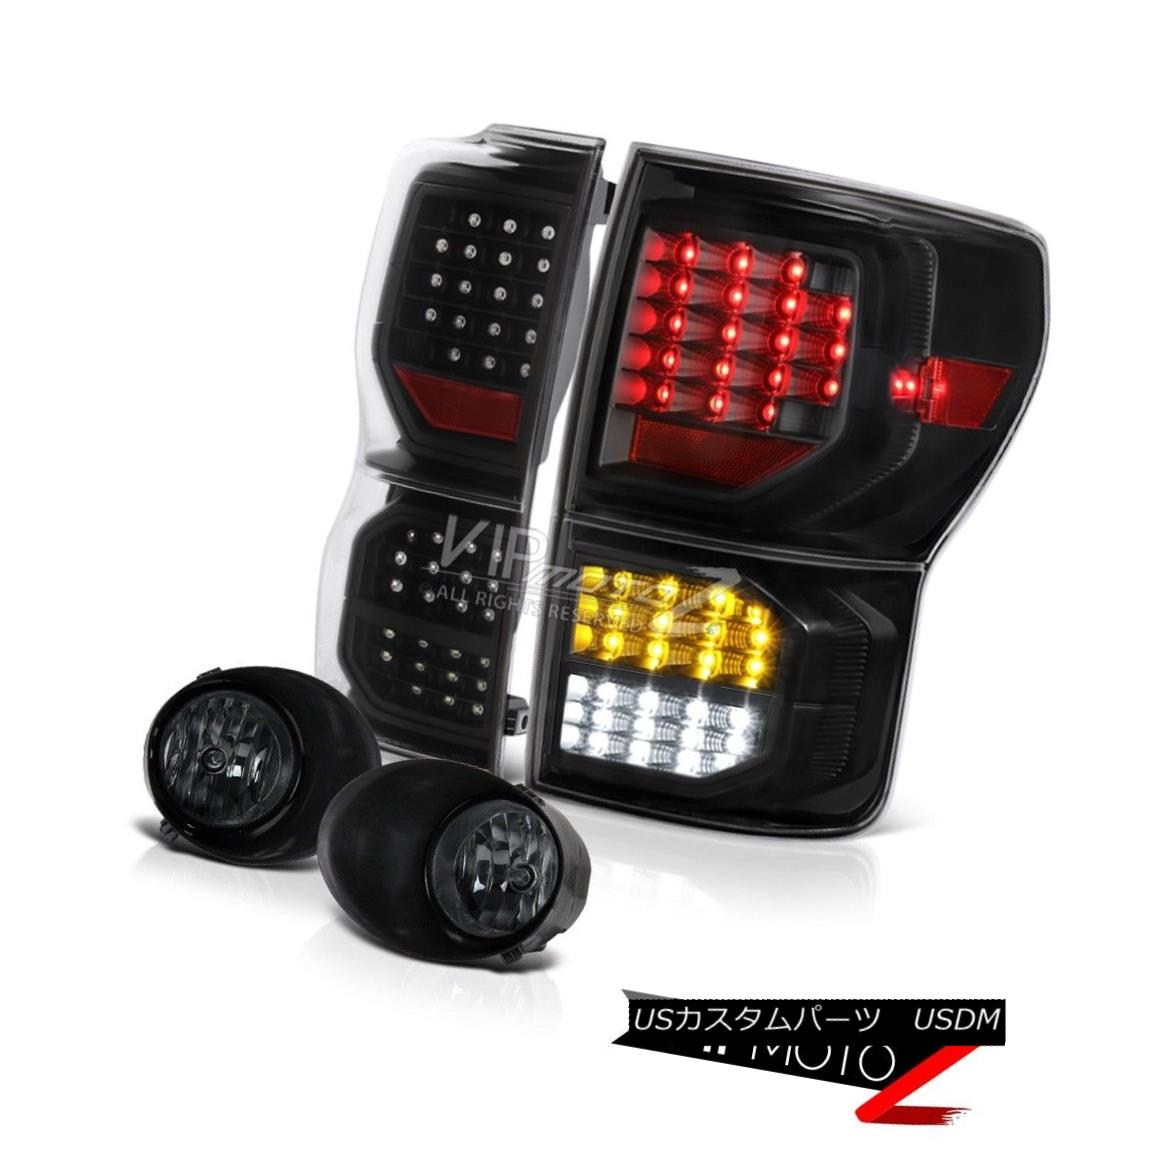 テールライト 07-13 Toyota Tundra Platinum Rear Brake Lamps Fog Lights LED SMD